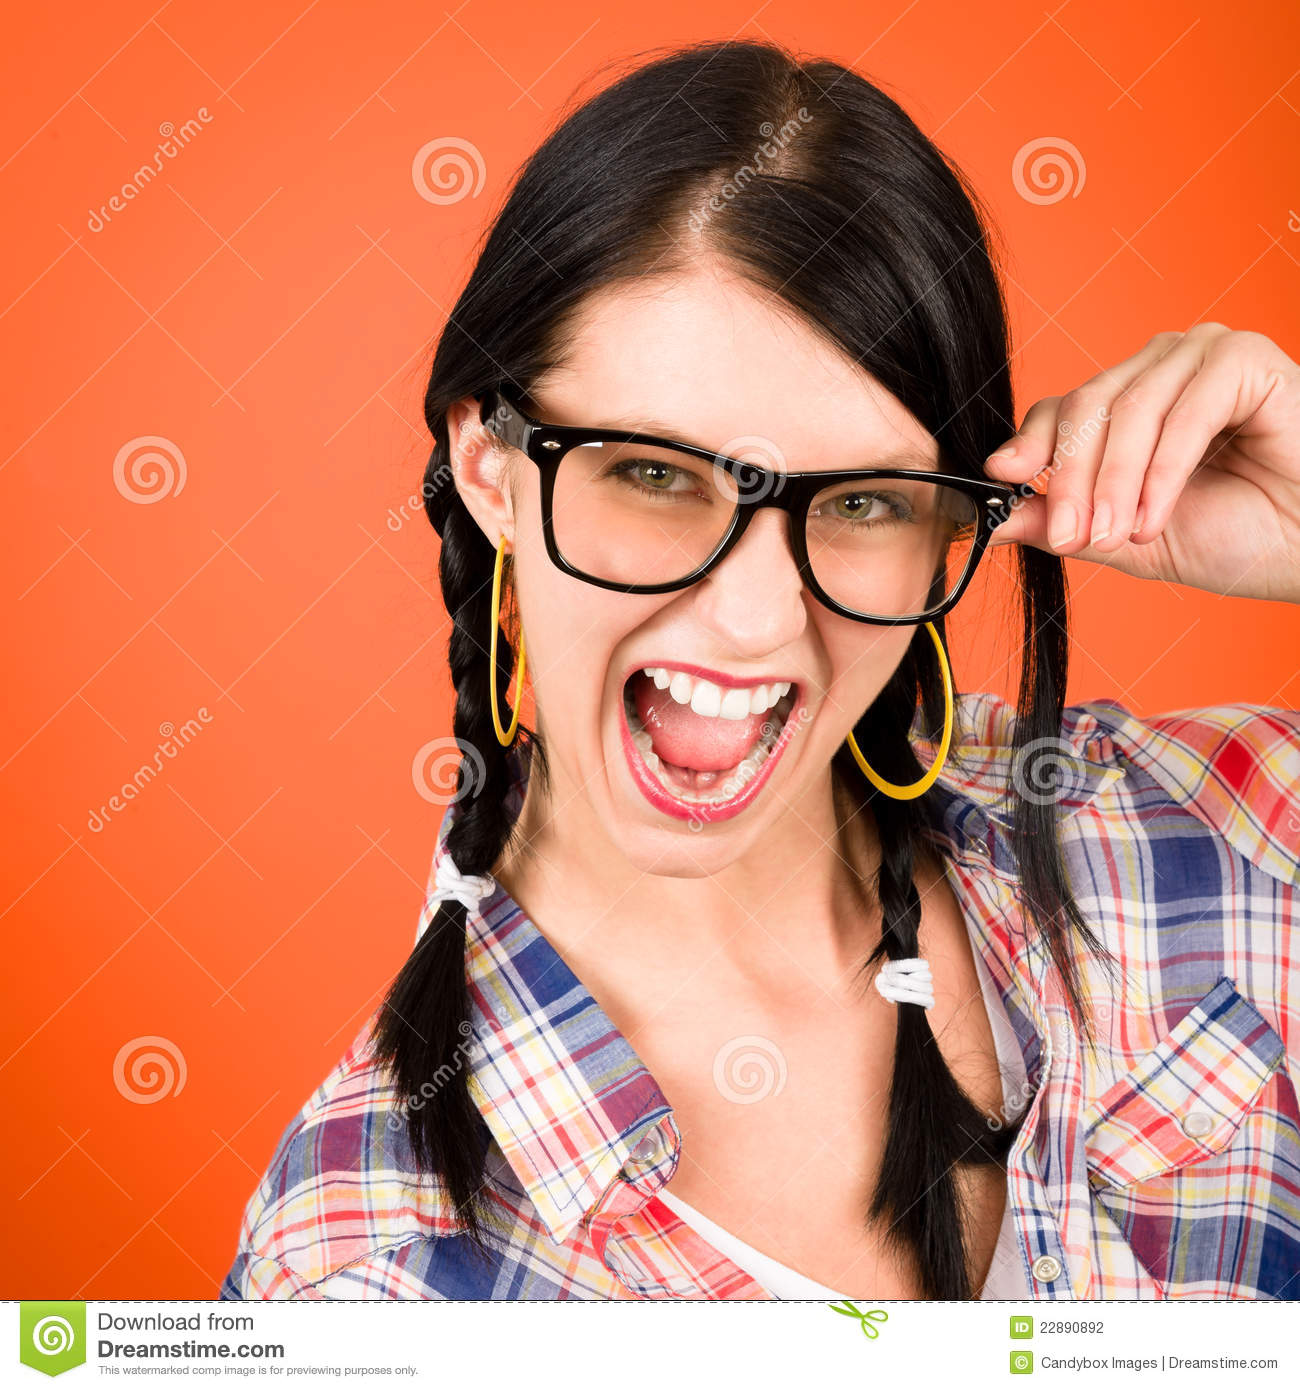 Download Crazy Girl Wear Nerd Glasses Shouting Stock Photo - Image of make, gazing: 22890892